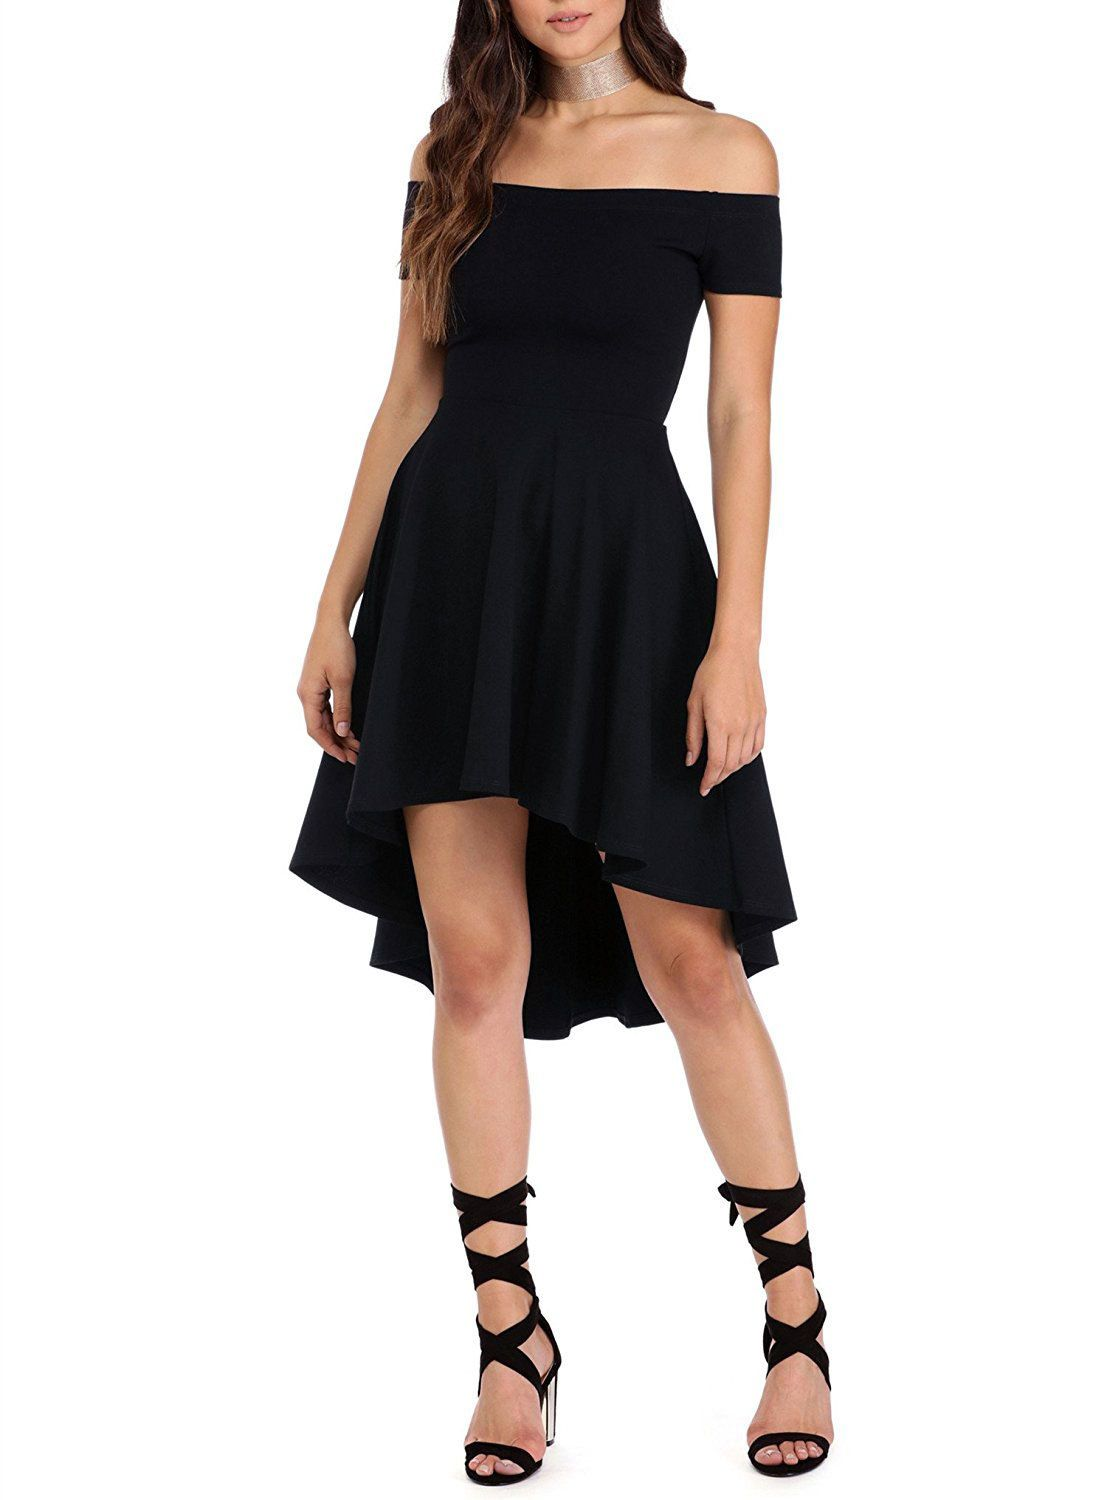 off the shoulder dresses are the perfect choice for warm